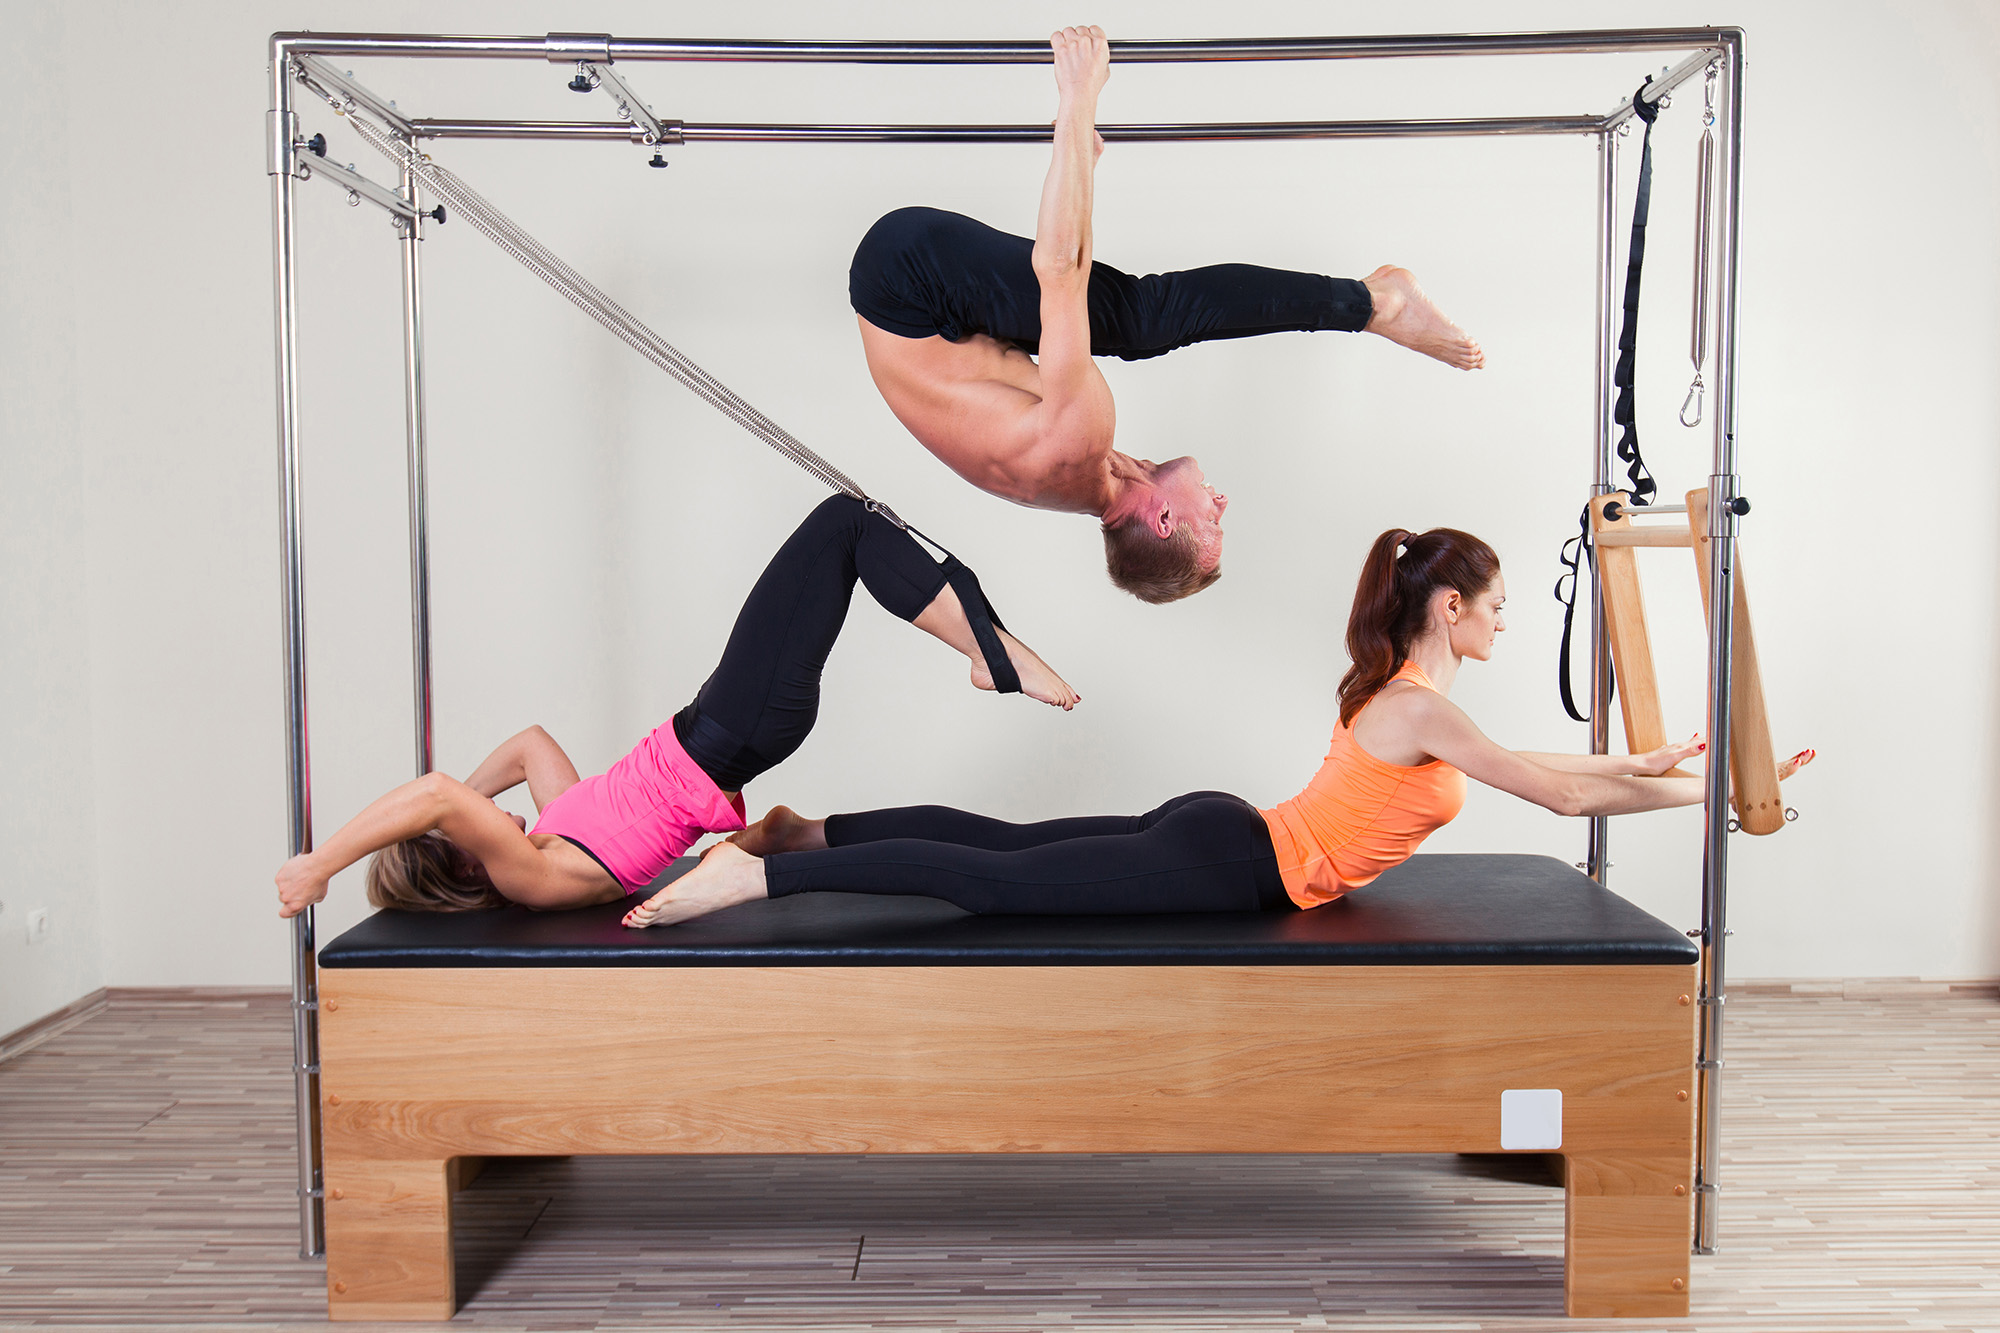 Two young, athletic women and one man all performing acrobatic pilates exercises on the same trapeze table.